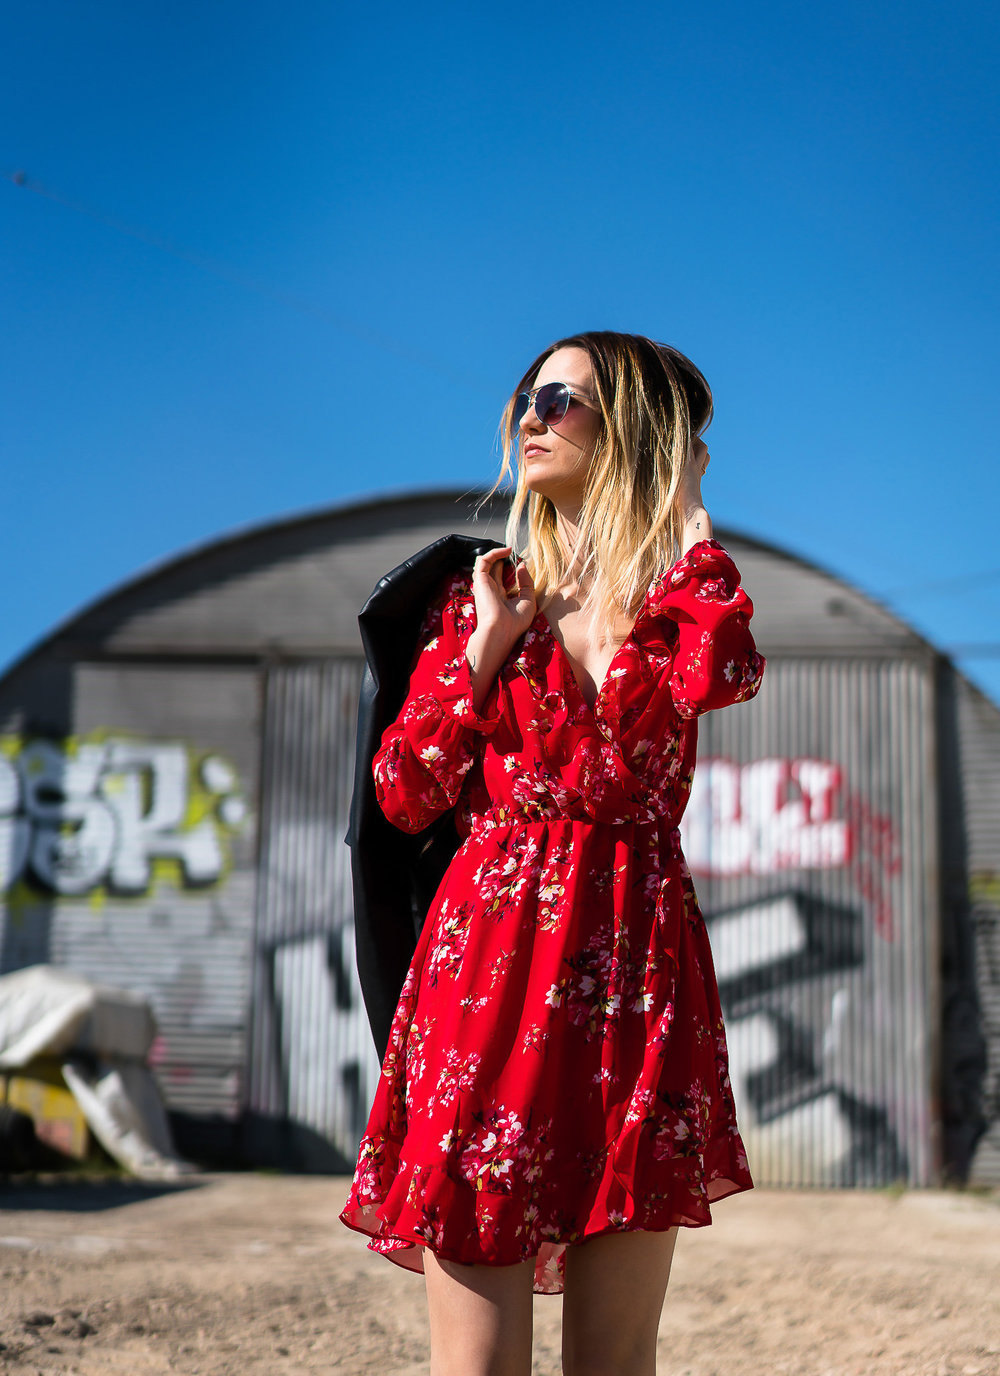 blog-mode-look-festival-robe-rouge1.jpg